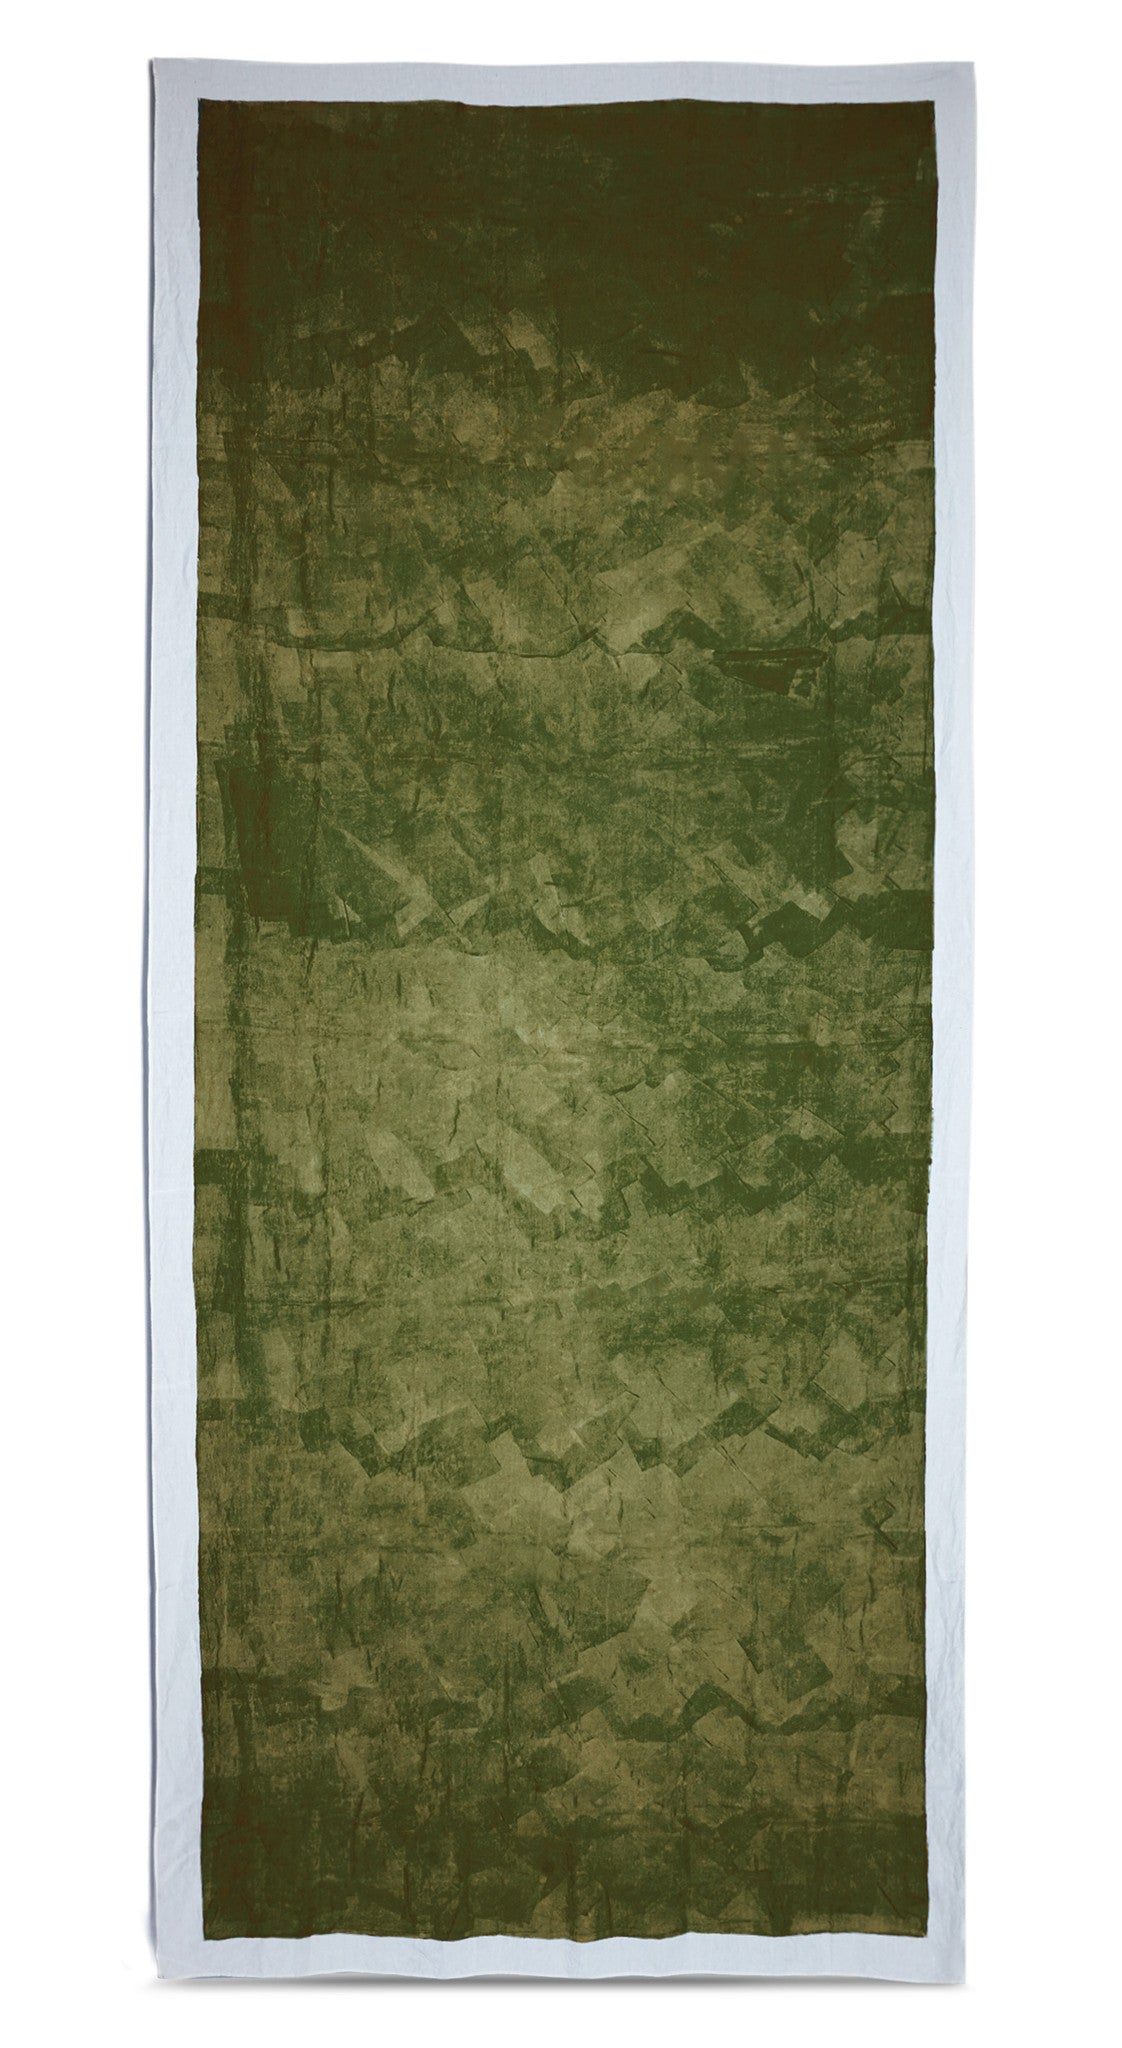 Full Field Linen Tablecloth in Avocado Green